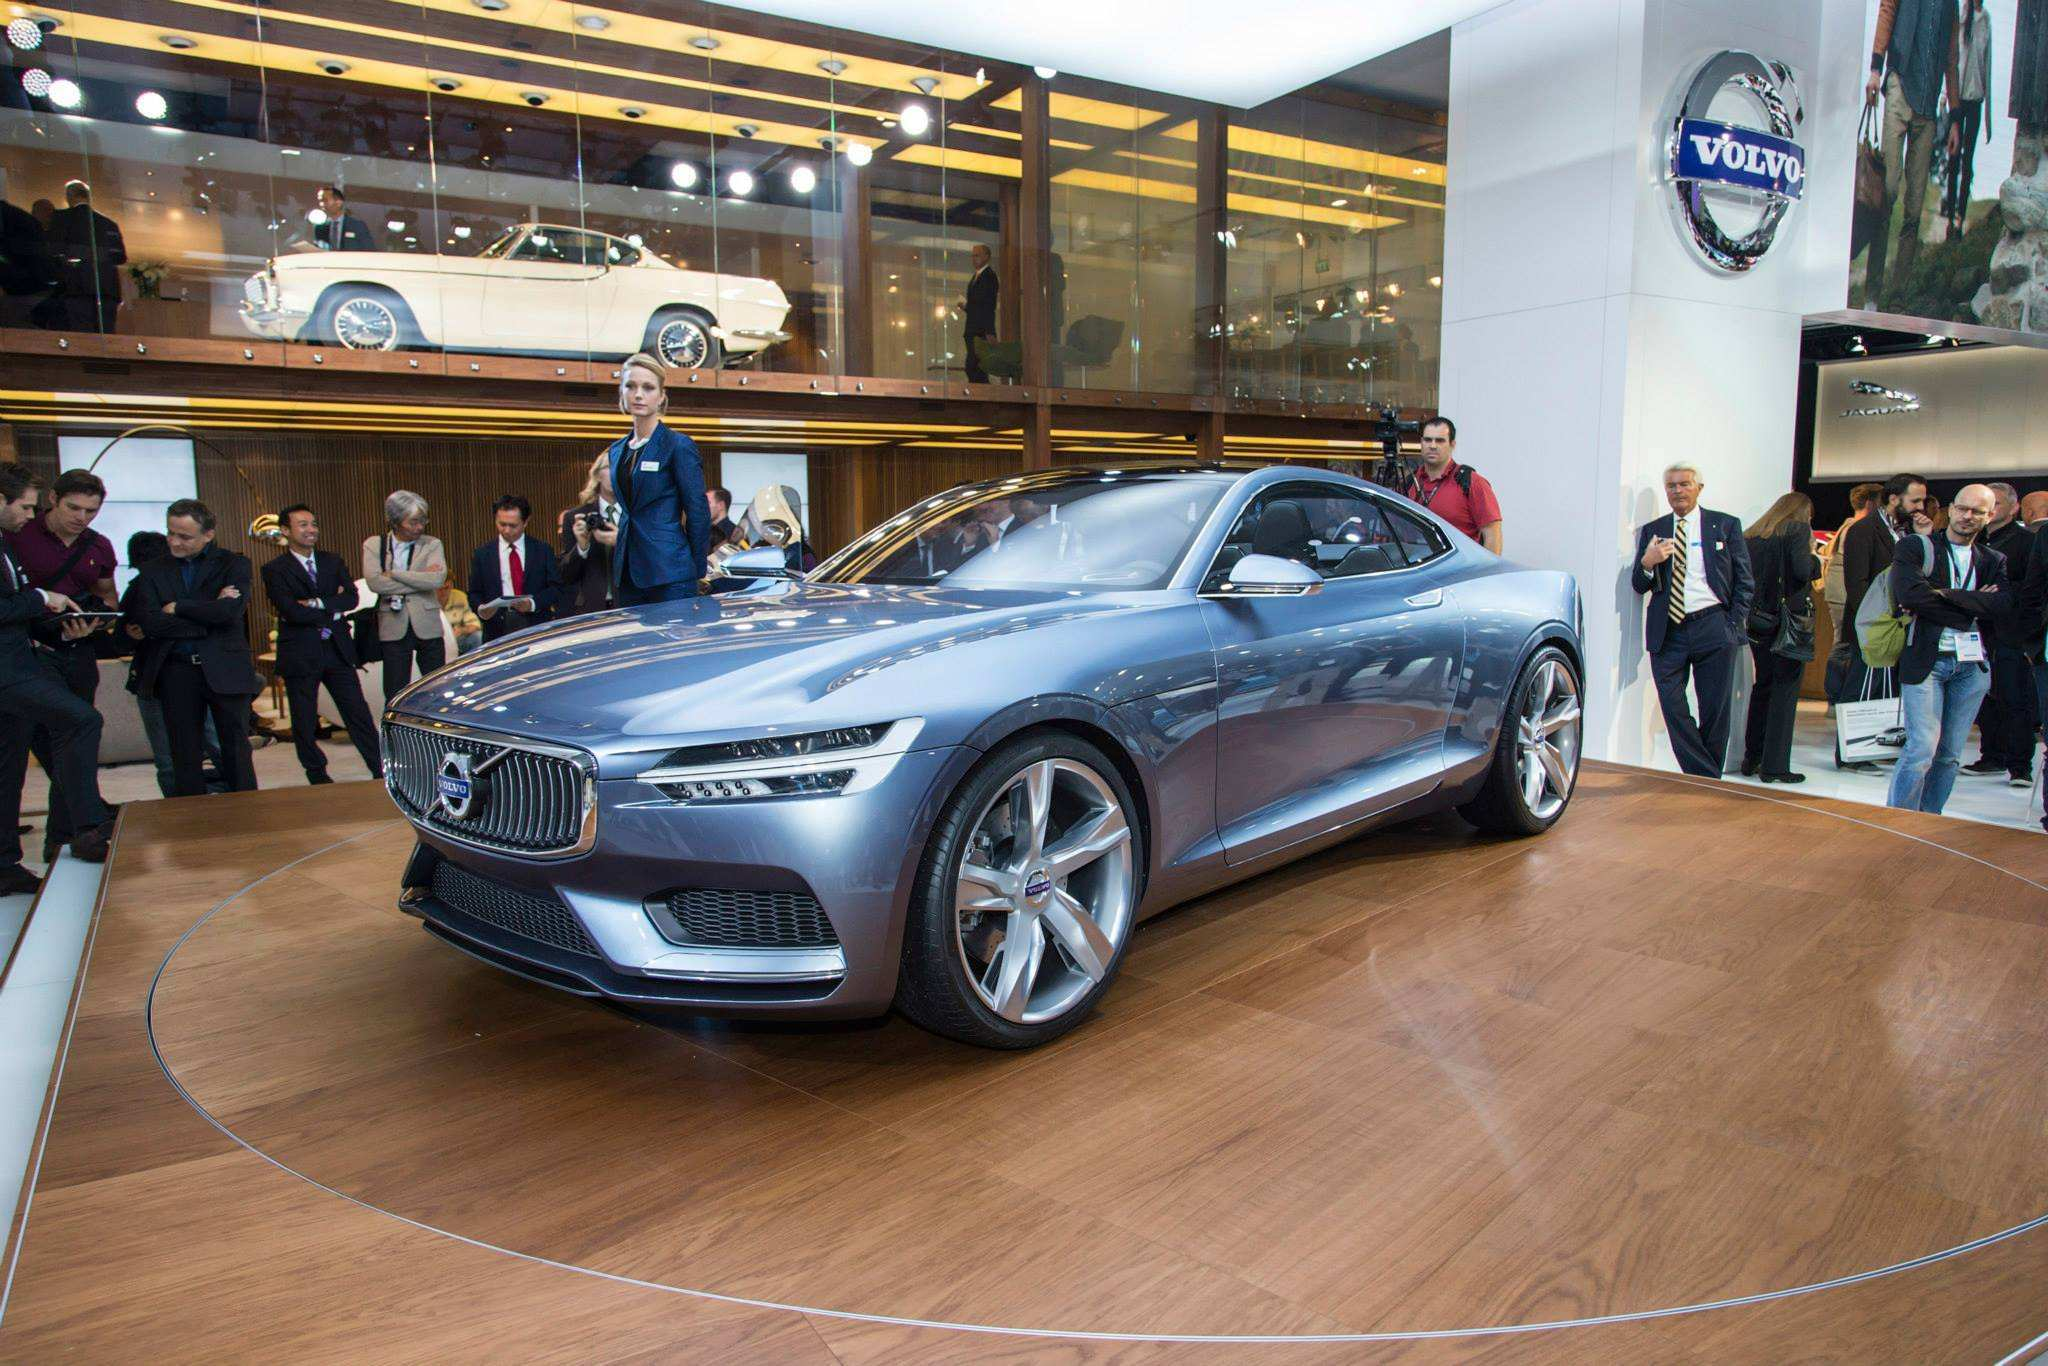 36 Concept of Volvo Coupe 2019 Pictures for Volvo Coupe 2019